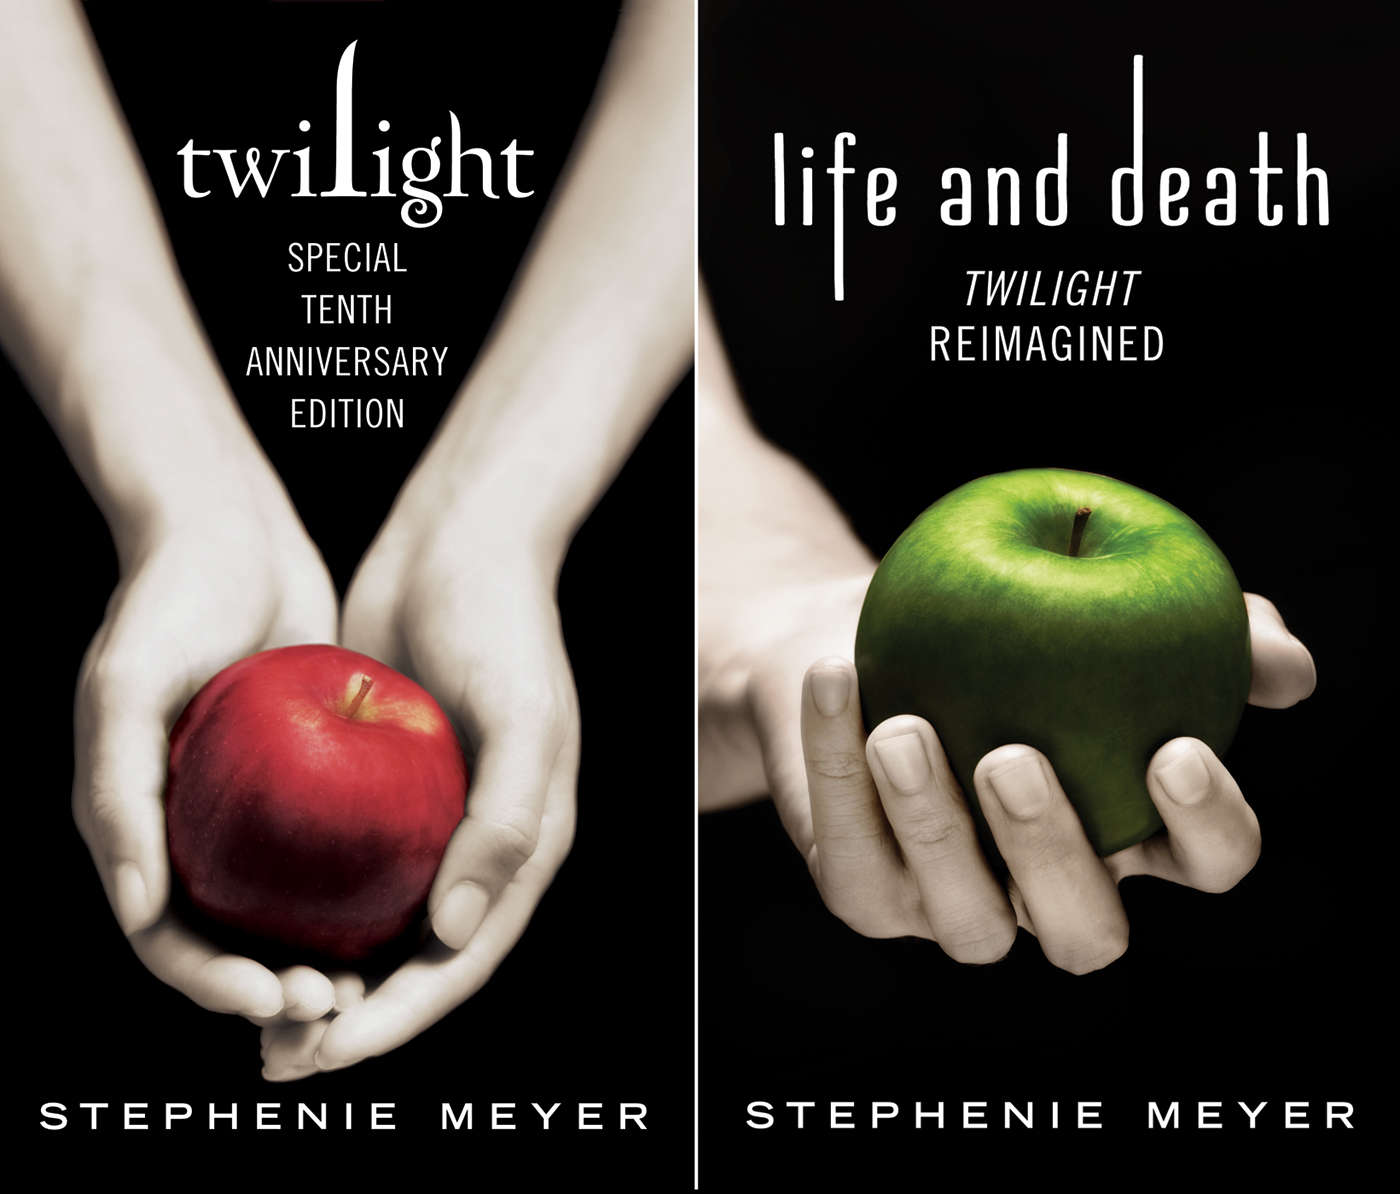 Twilight Tenth Anniversary Edition - Stephenie Meyer [kindle] [mobi]